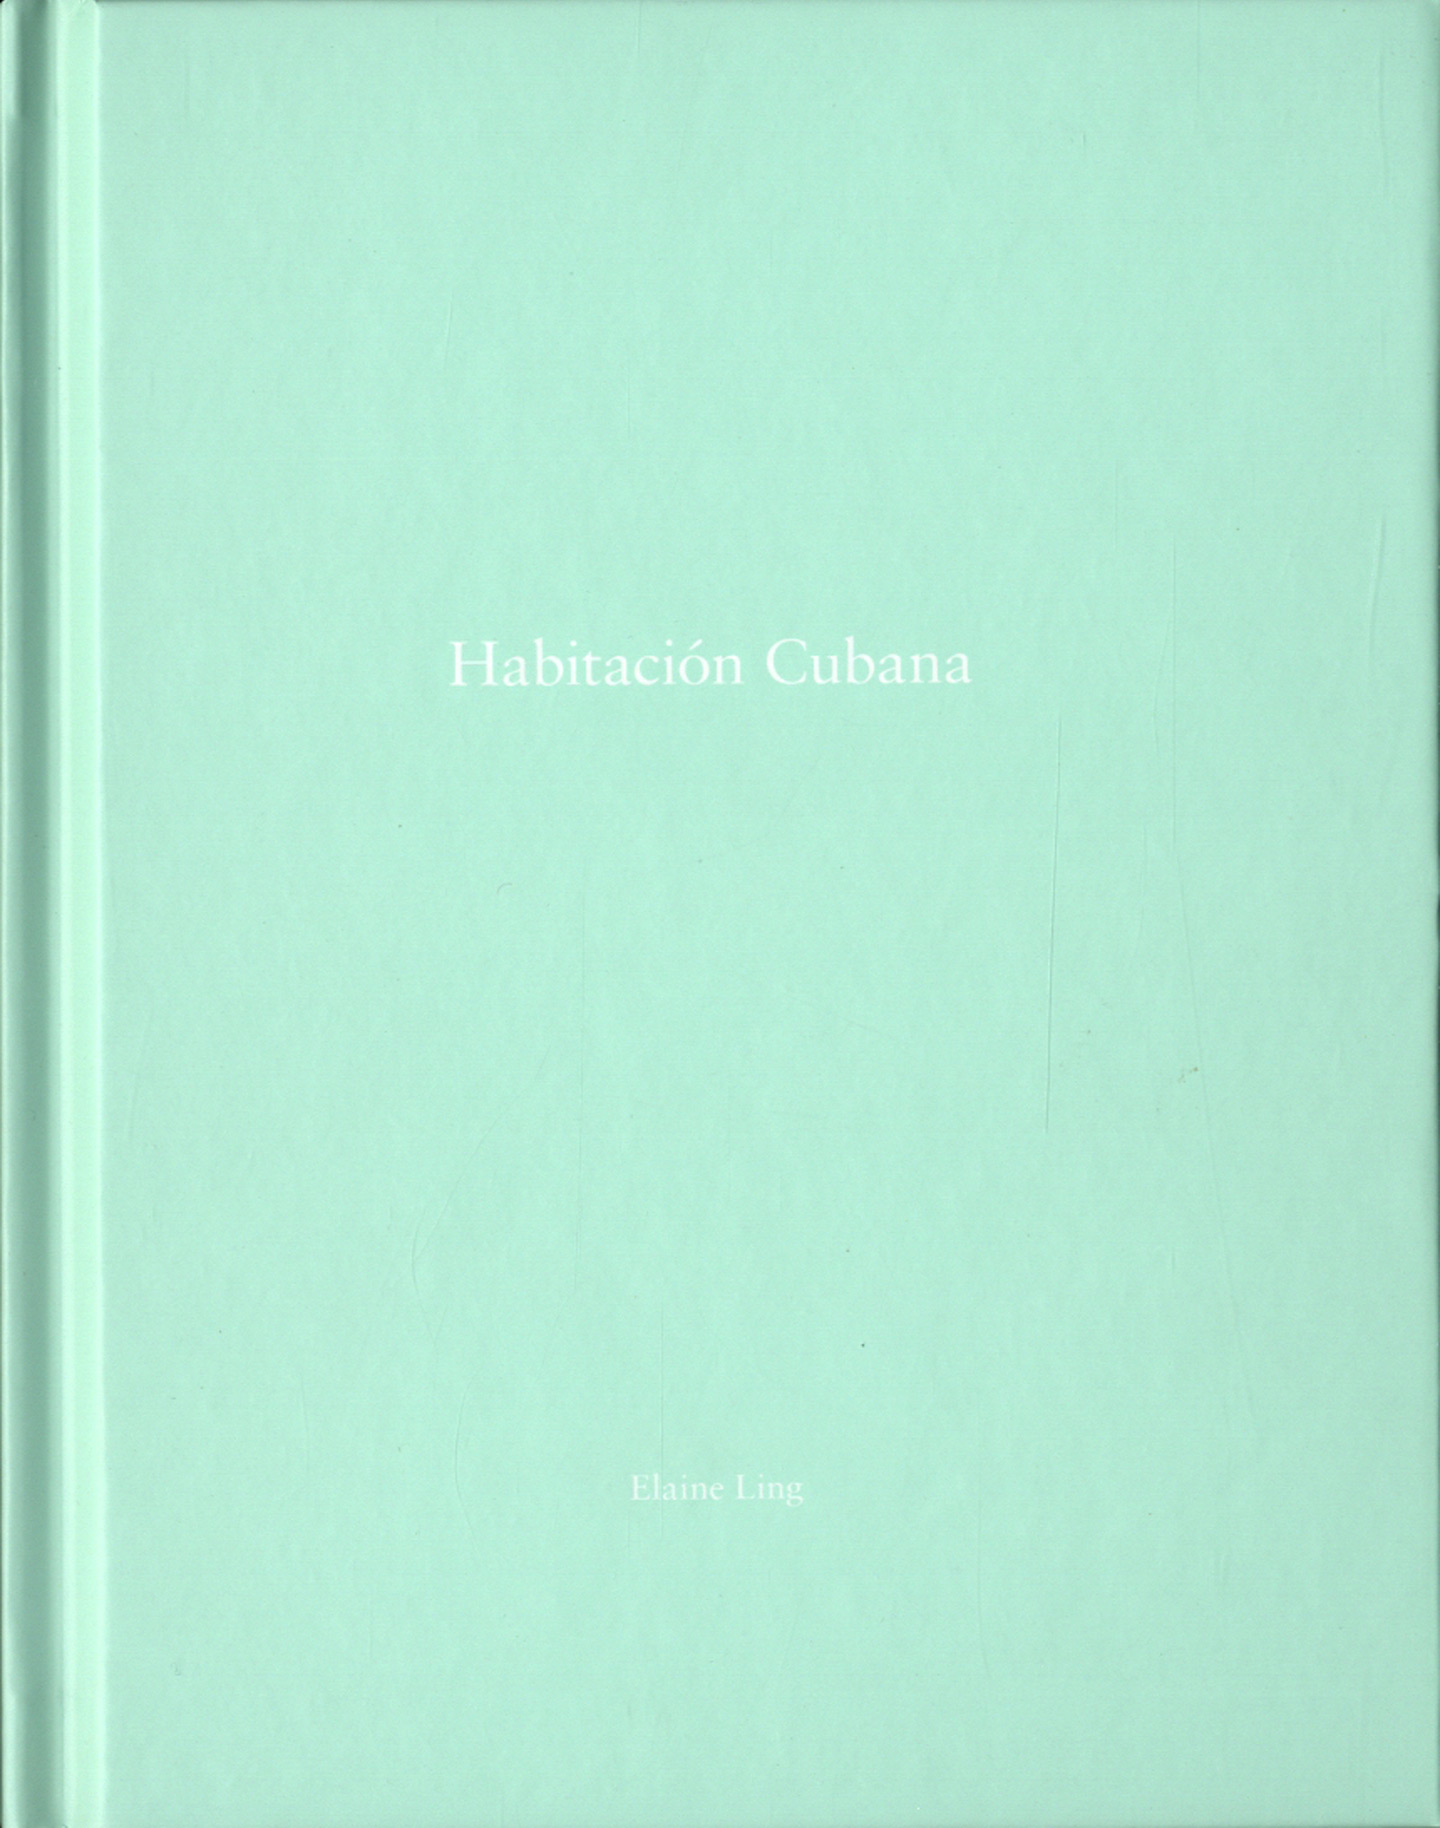 Elaine Ling: Habitación Cubana (One Picture Book #94), Limited Edition (with Print)